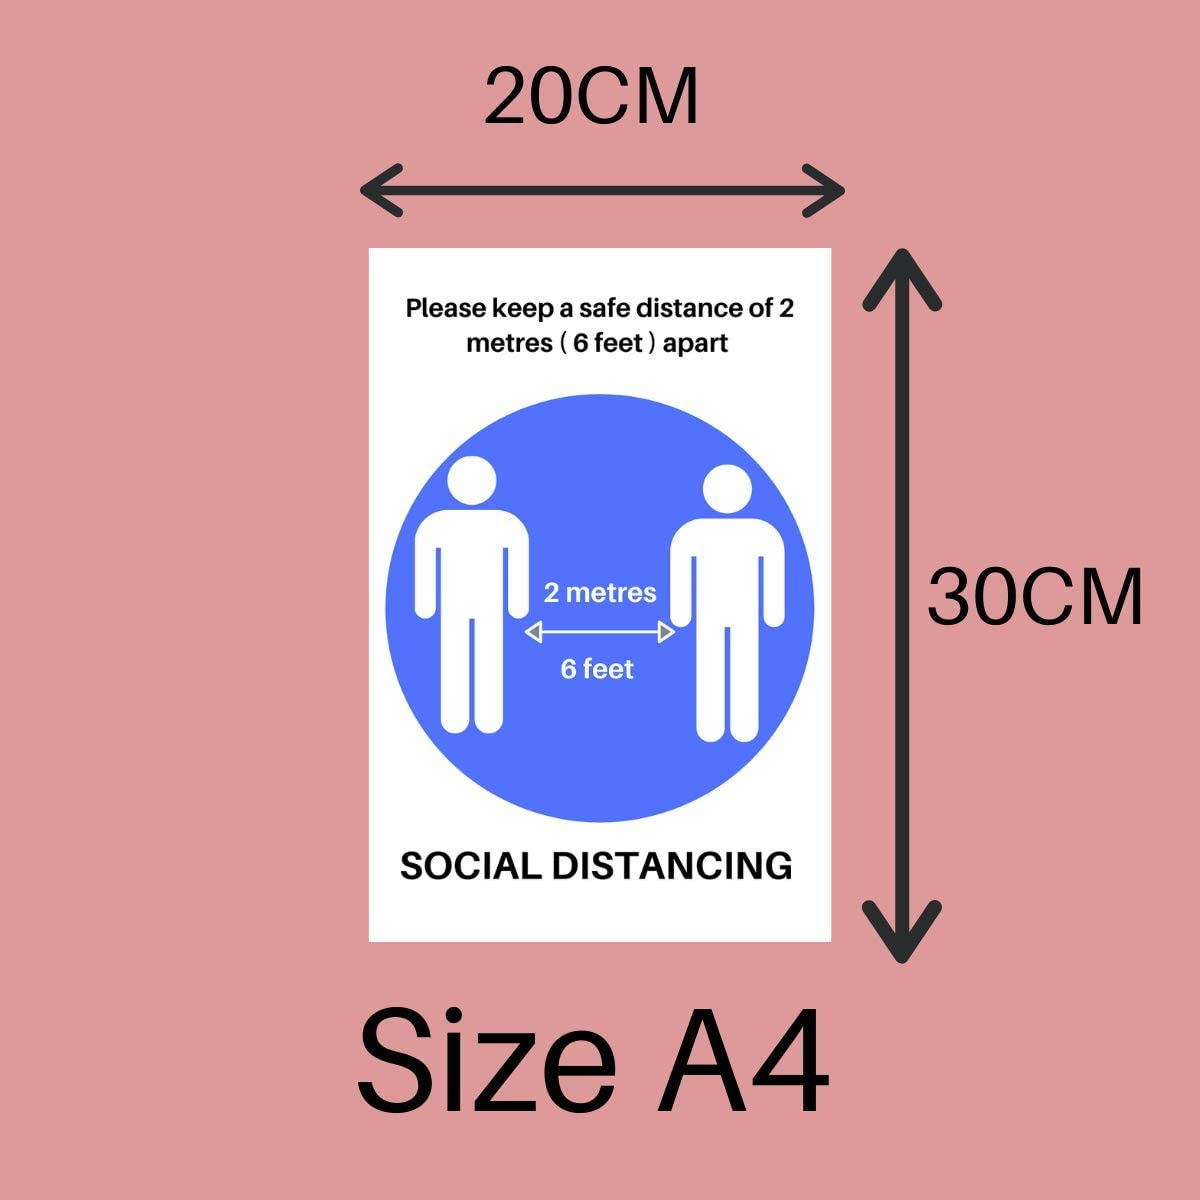 300mm X 200mm Wall Markers Self Adhesive Poster Social Distancing Wall Stickers Keep 2 Meter Away Wall Sign 4 x Blue Social Distancing Stickers 2 meter Wall Stickers Safety Sign